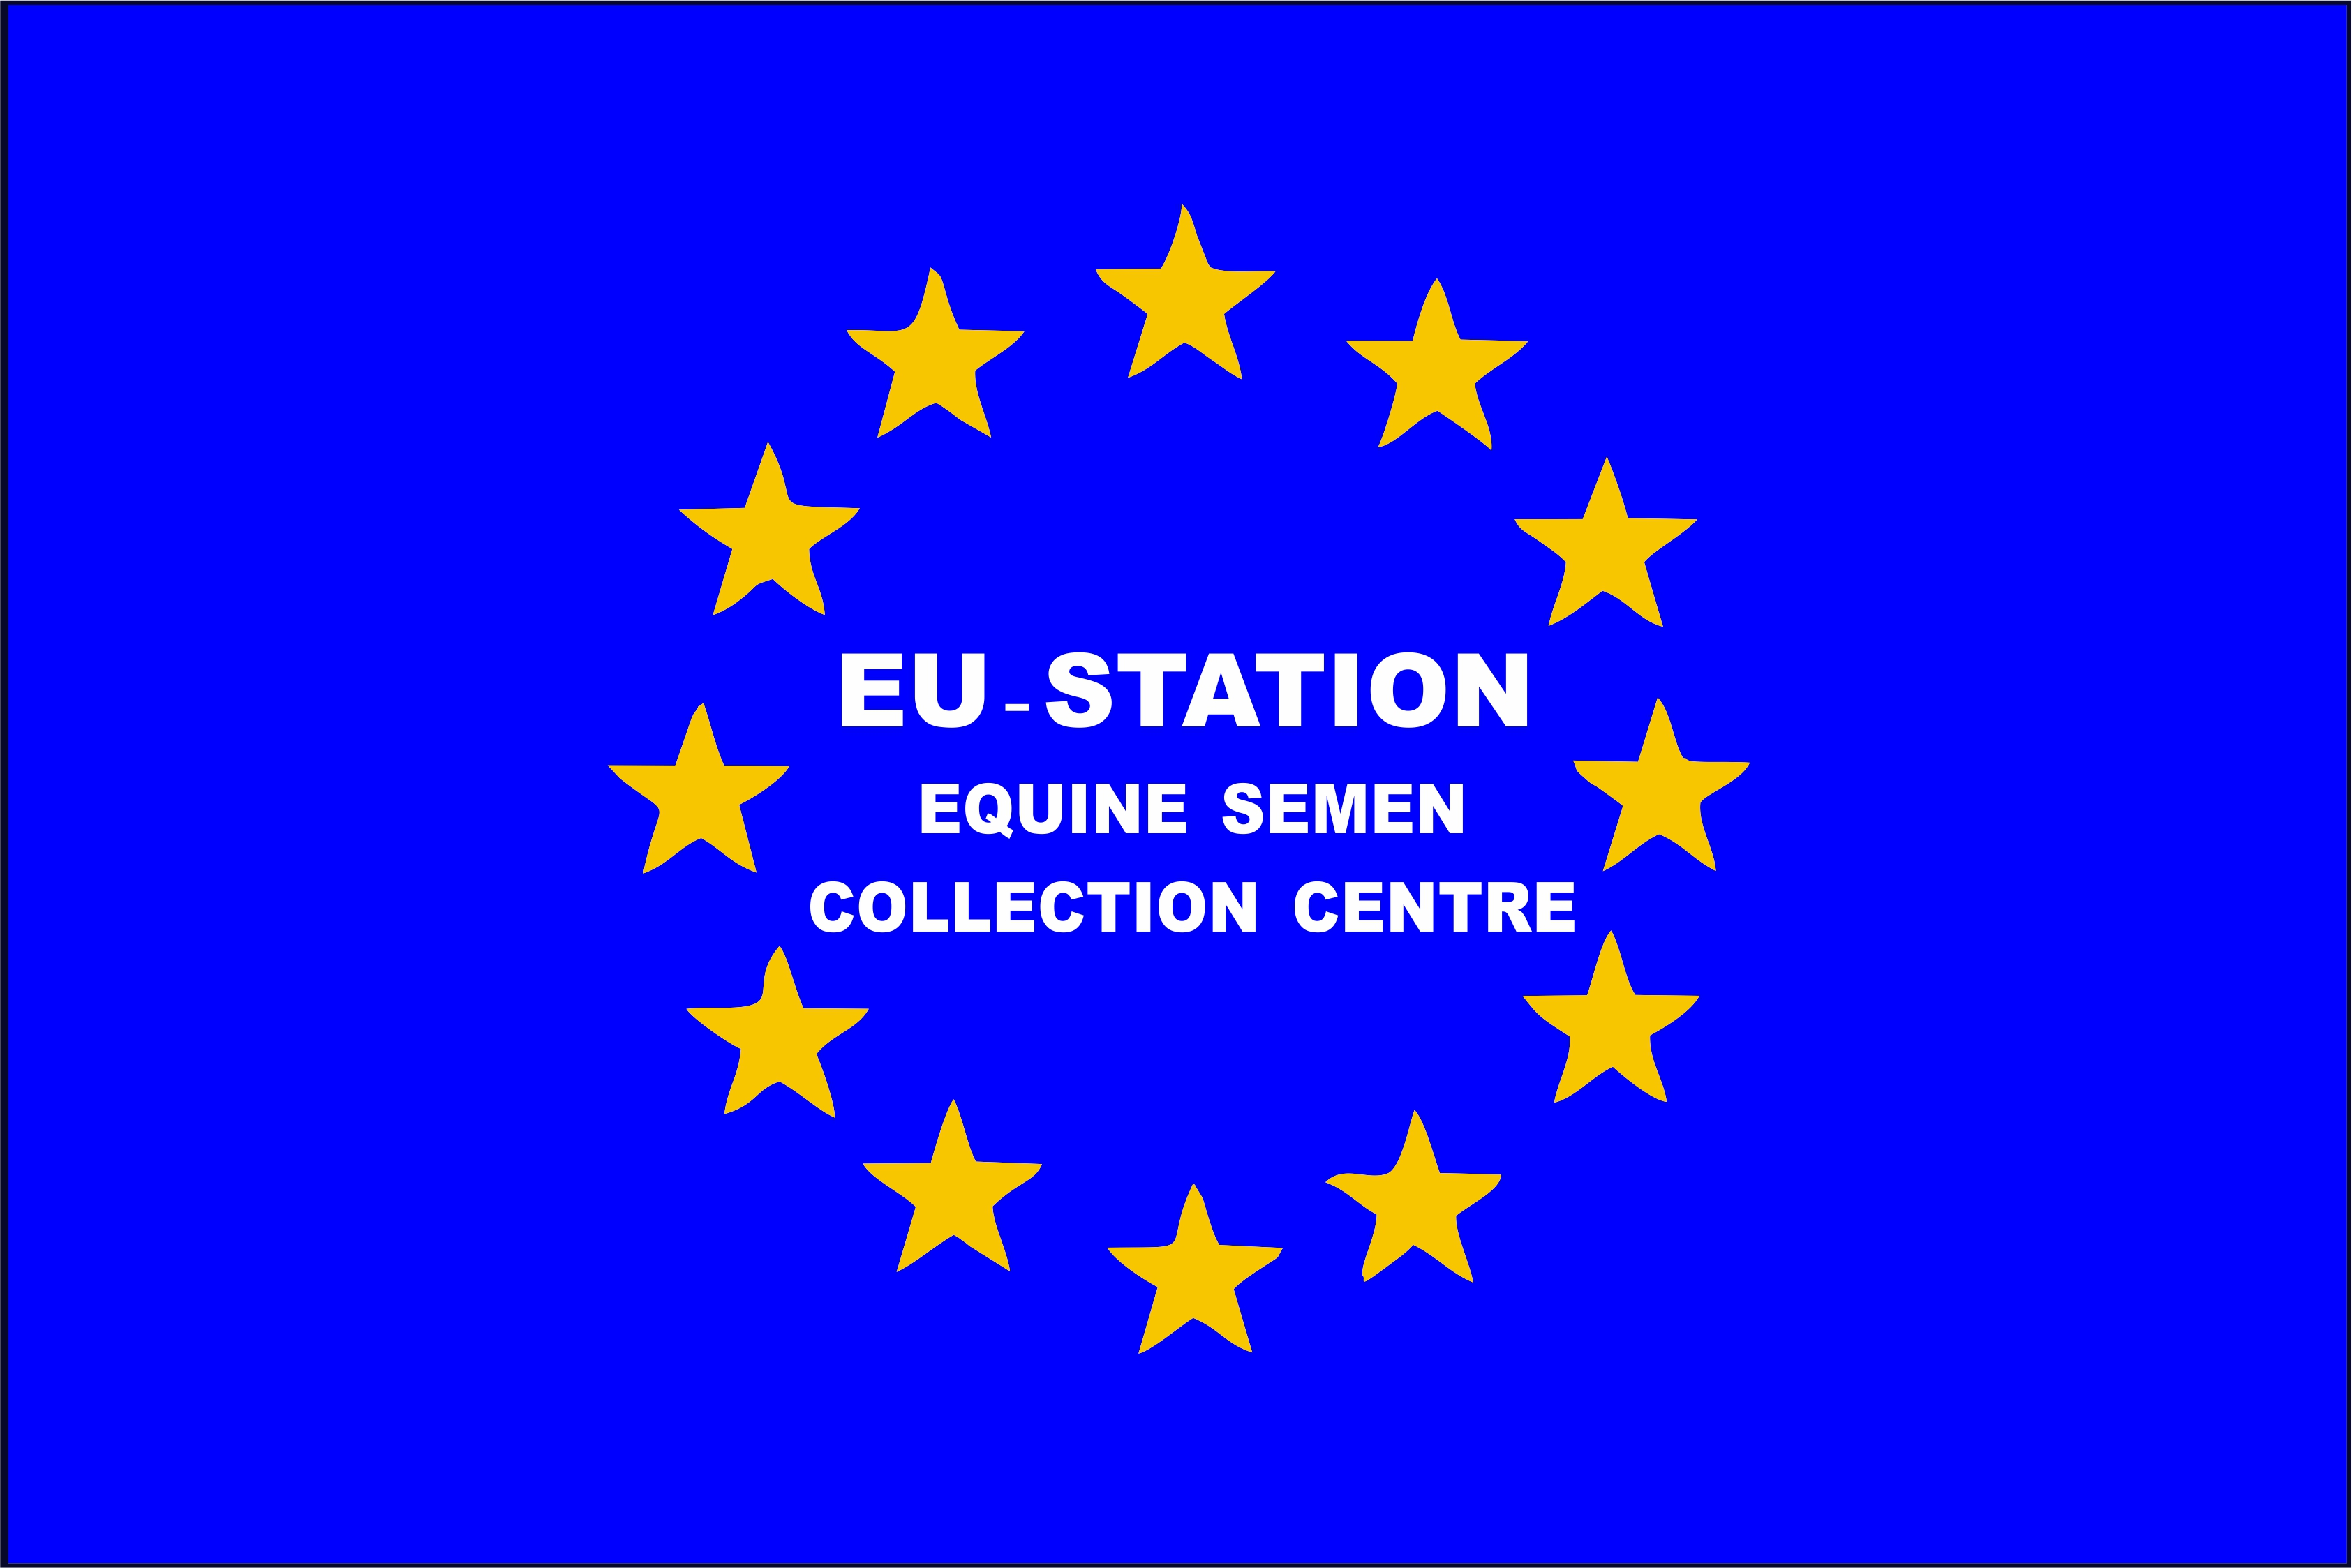 Equine Semen Collection Centre